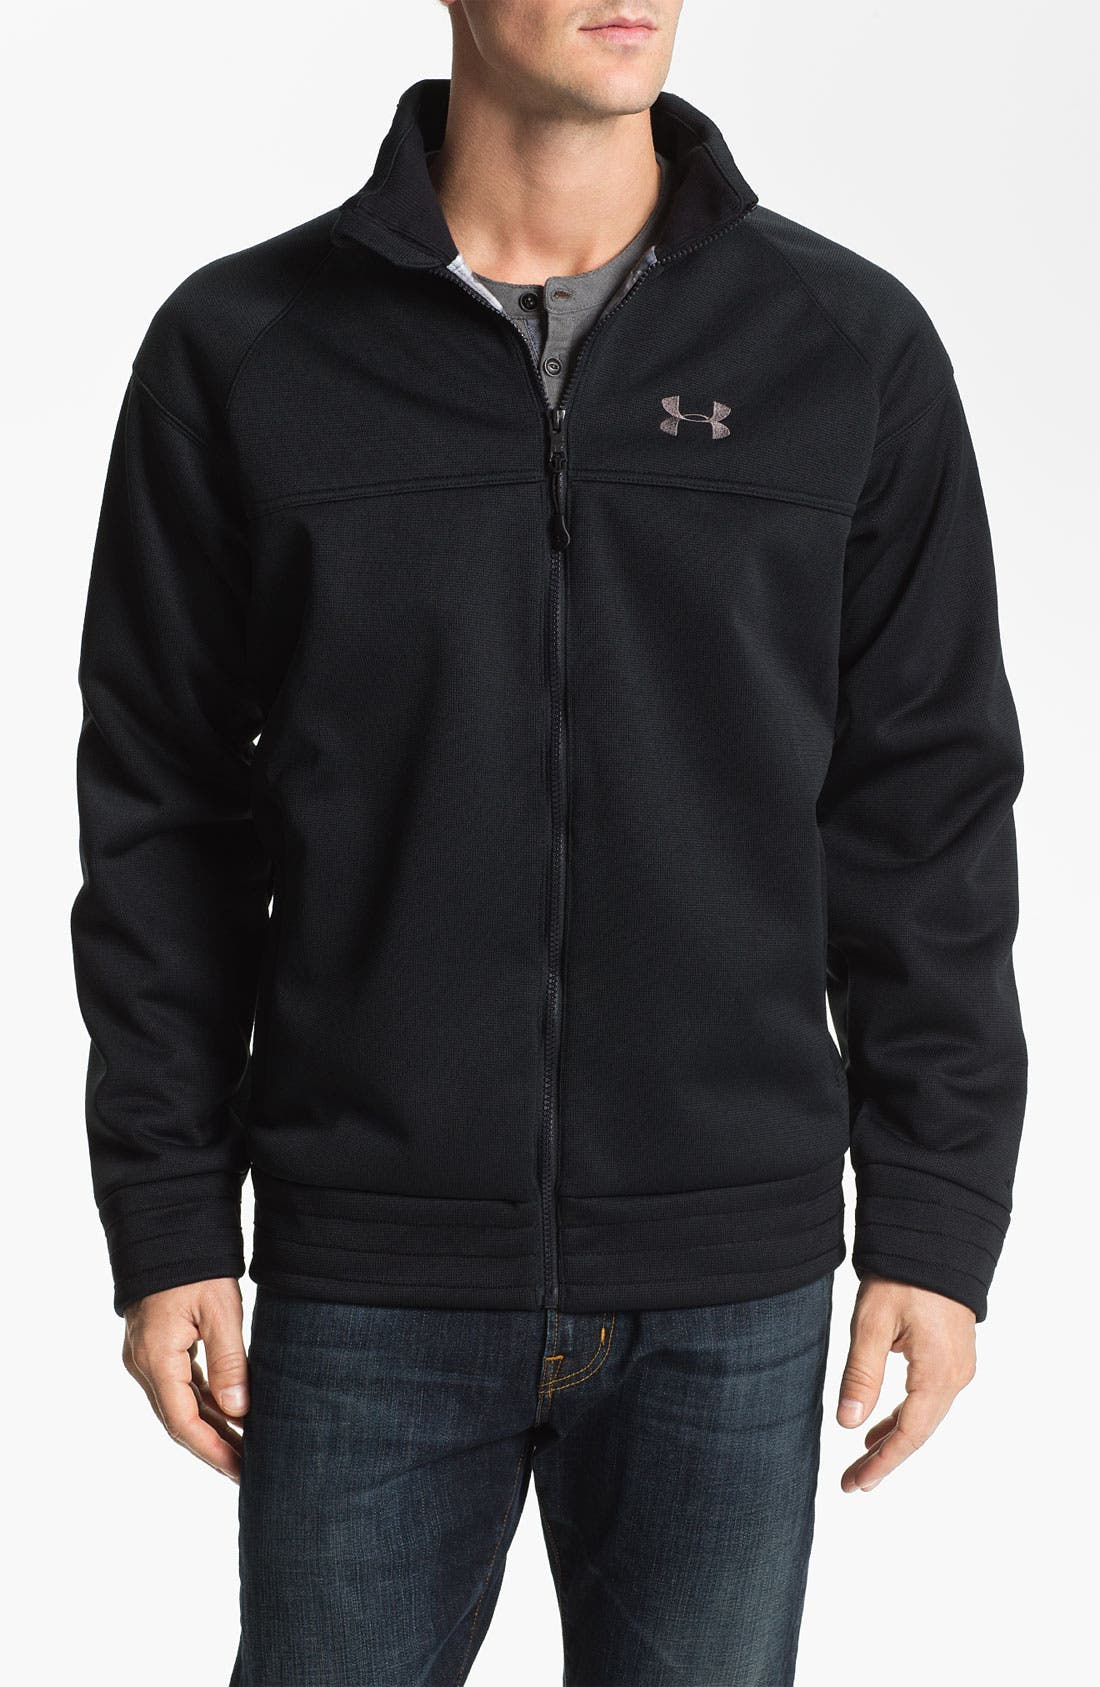 Alternate Image 1 Selected - Under Armour 'Swagger Storm' Wind Jacket